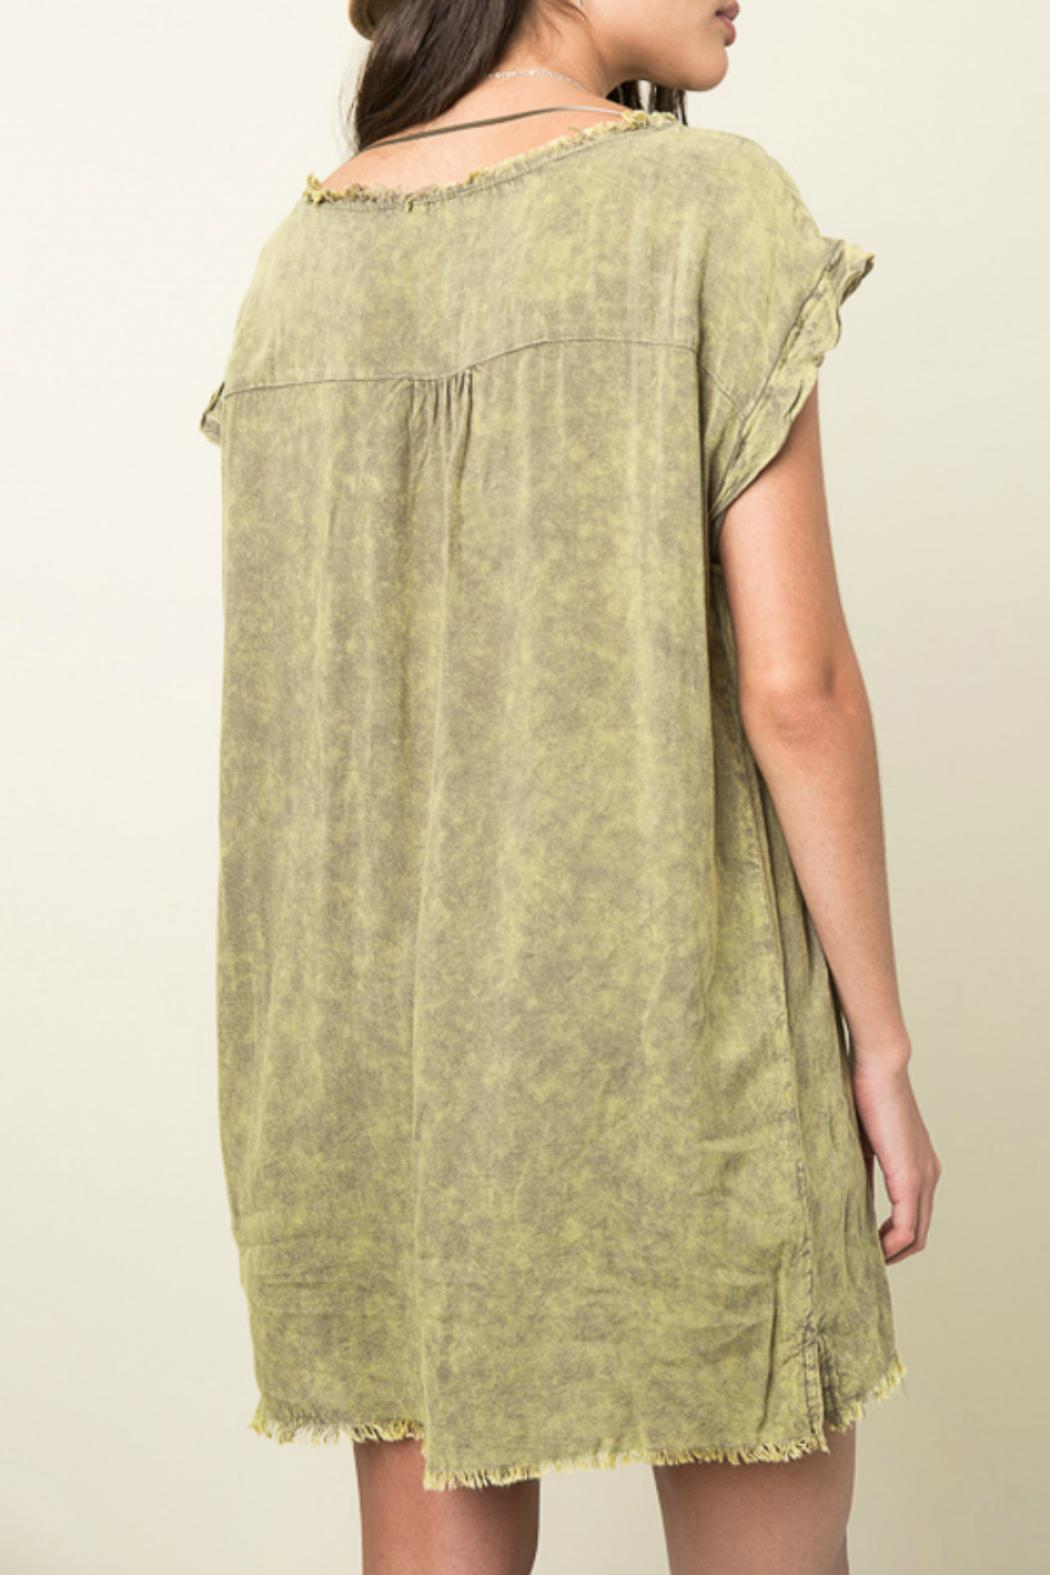 Hayden Los Angeles Washed Distressed Top - Side Cropped Image